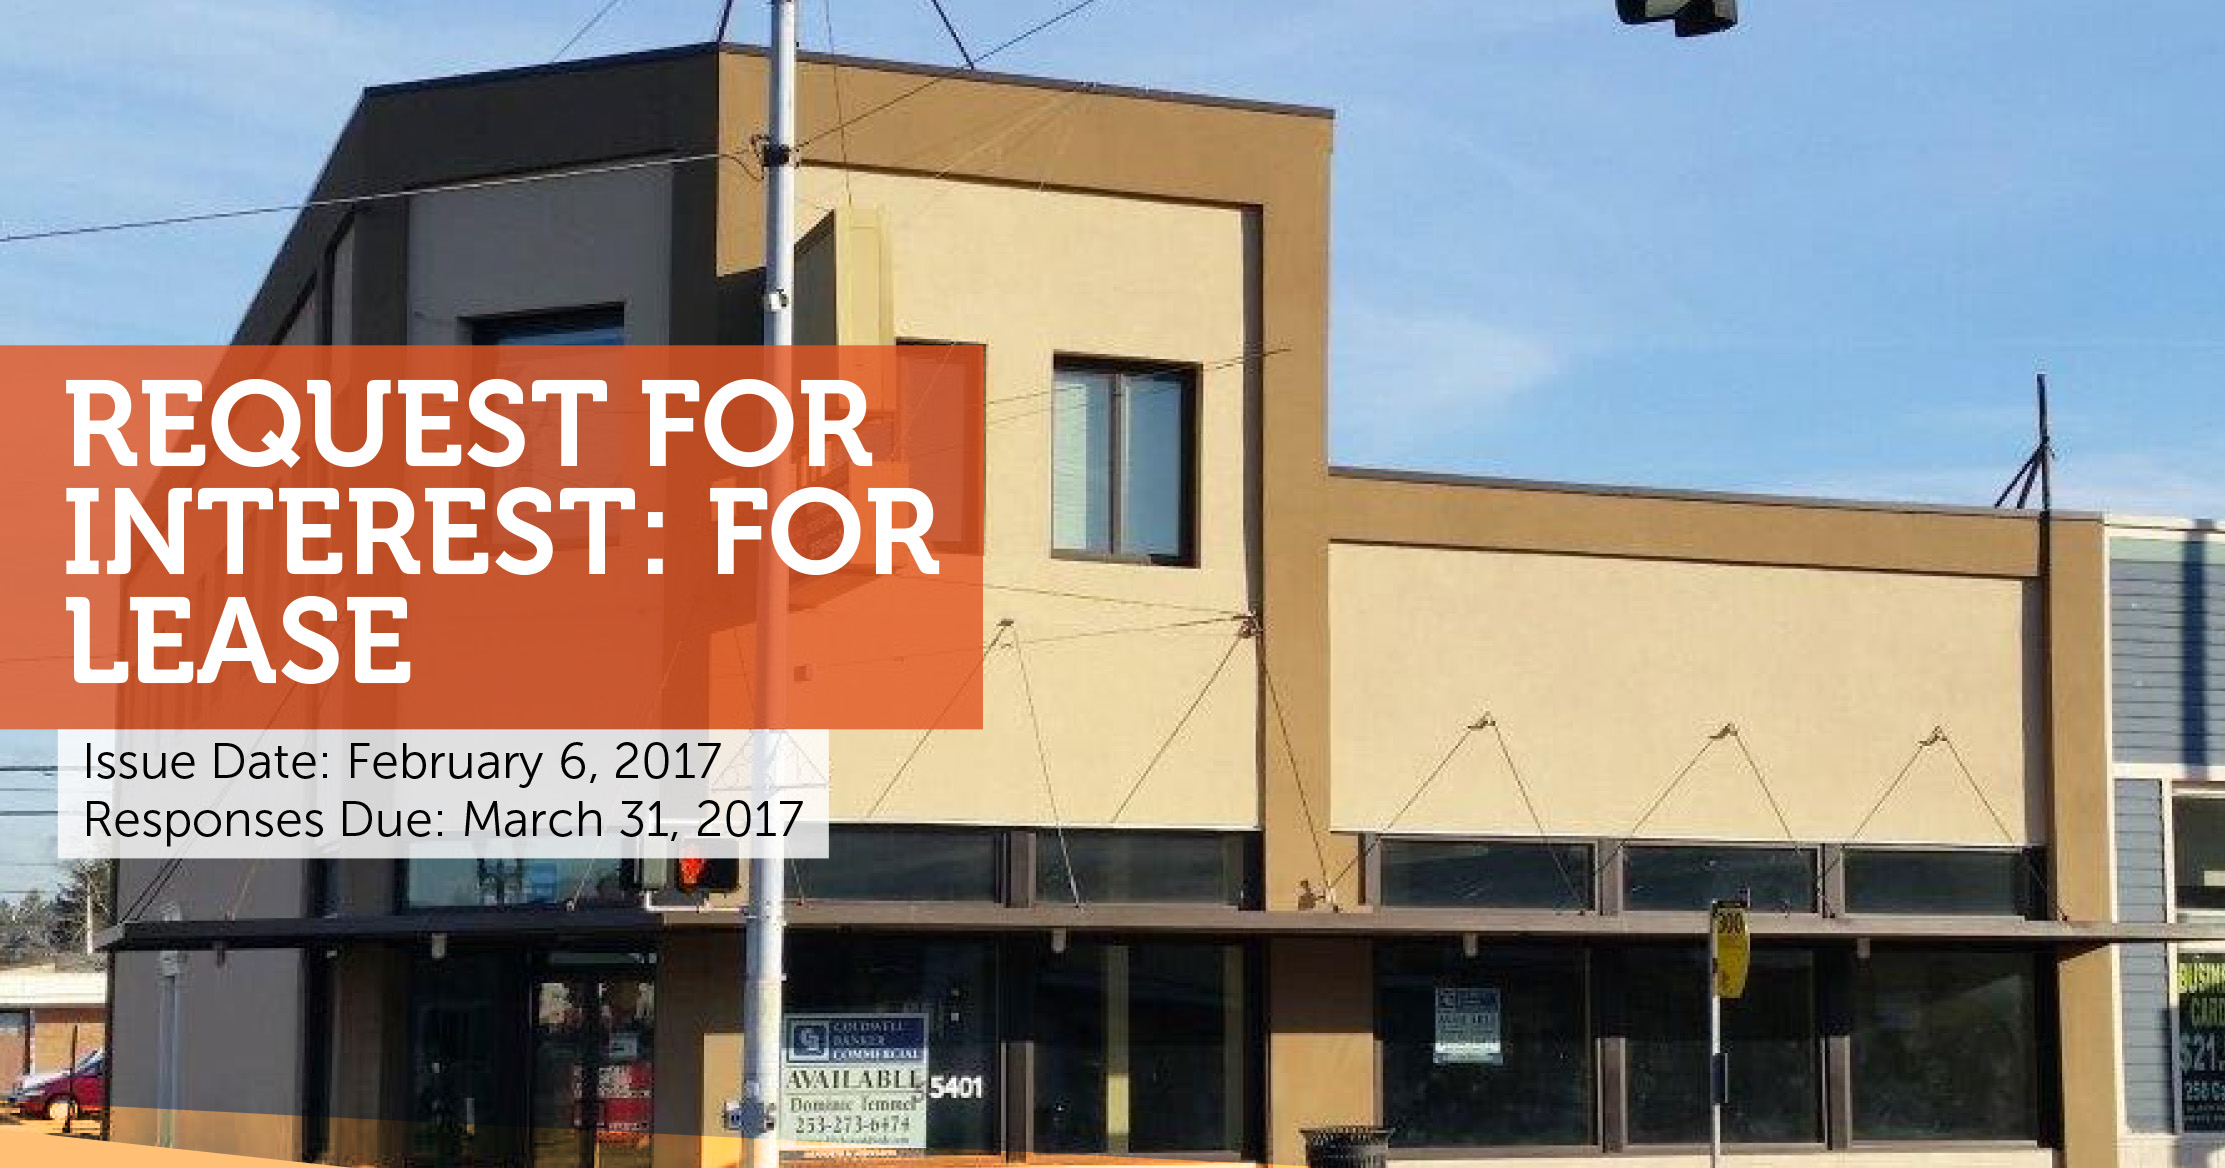 City of Tacoma issued a request for interest to partner with small business in South Tacoma Way